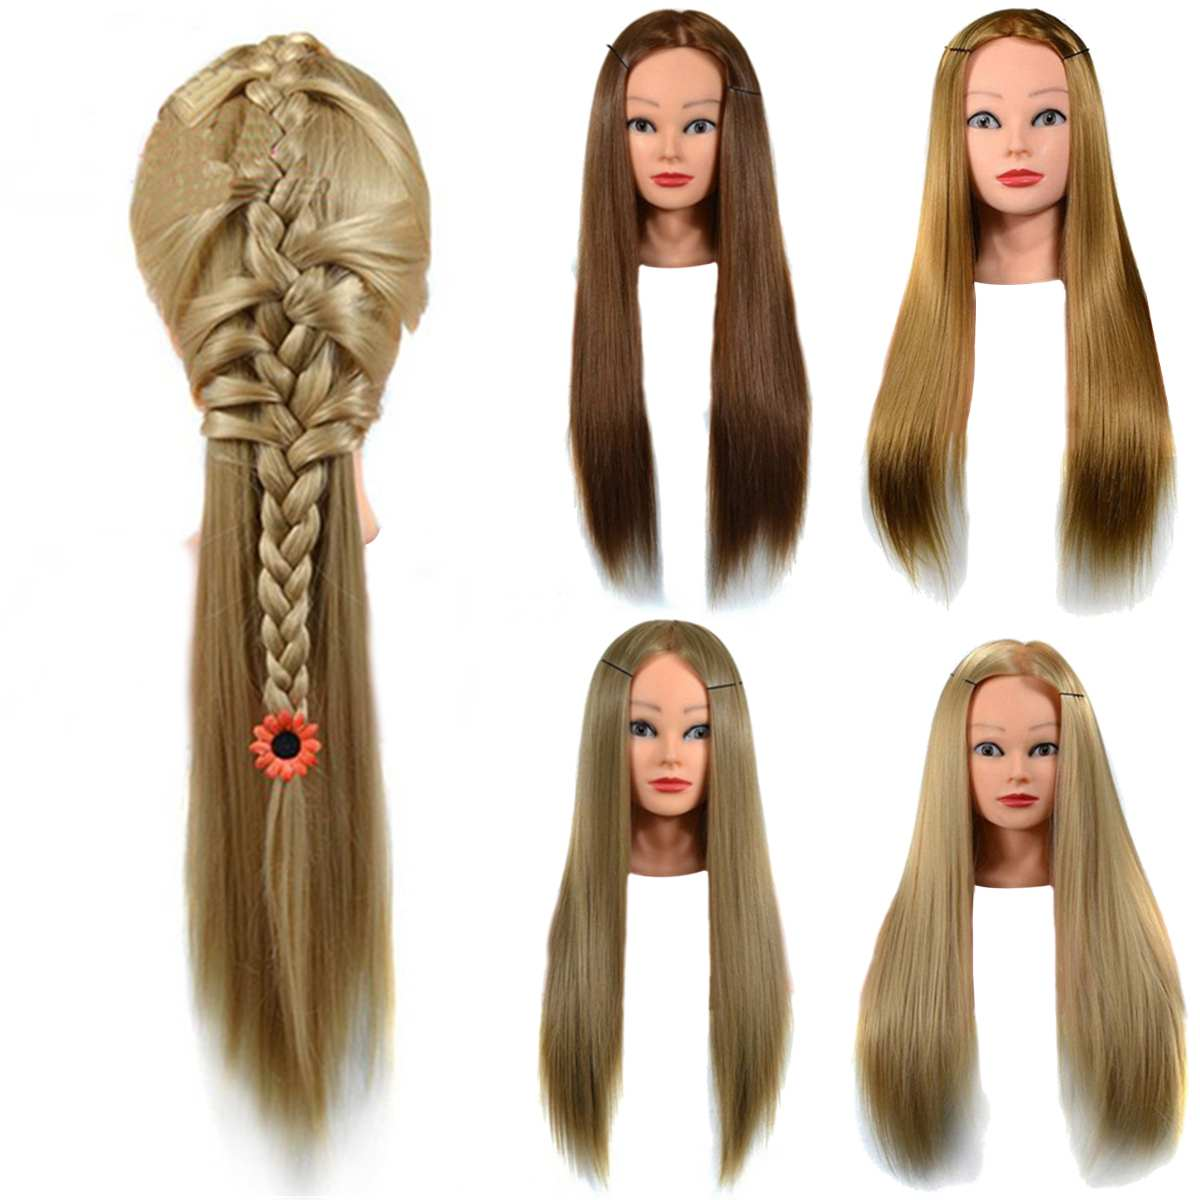 24 Inch Hair Mannequin Salon Students Hairdressing Practice Cutting Braiding Training Head Mannequin Model Hairdresser Styling